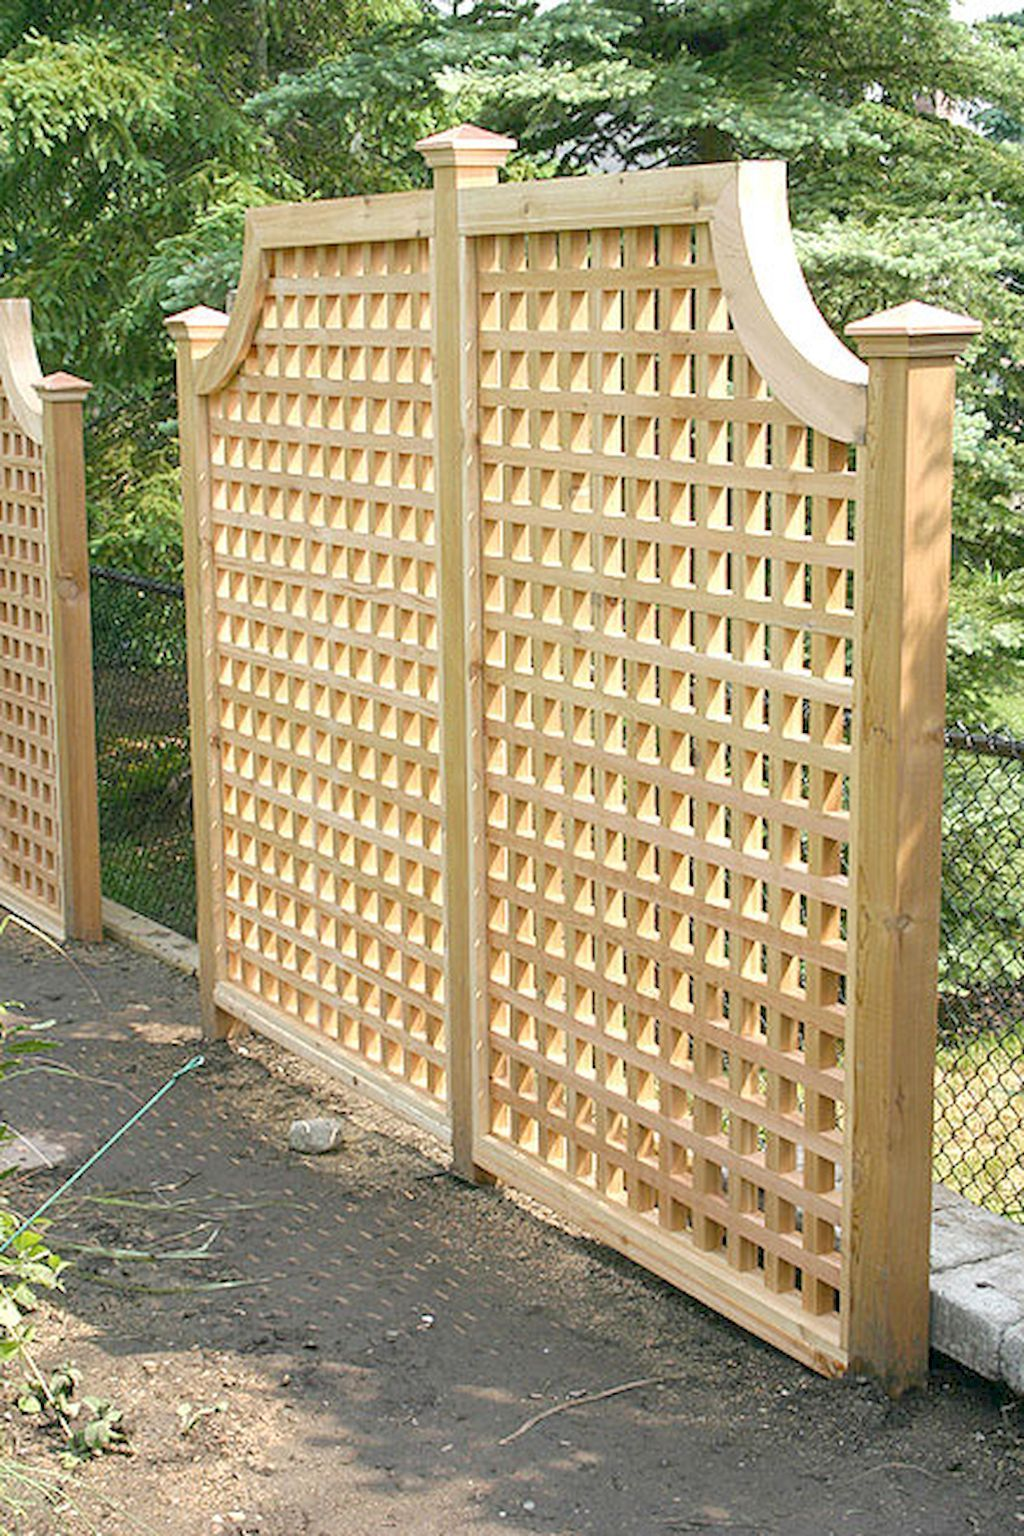 Pin by Fencing Heavy on Unique Fencing Ideas | Pinterest | Privacy ...